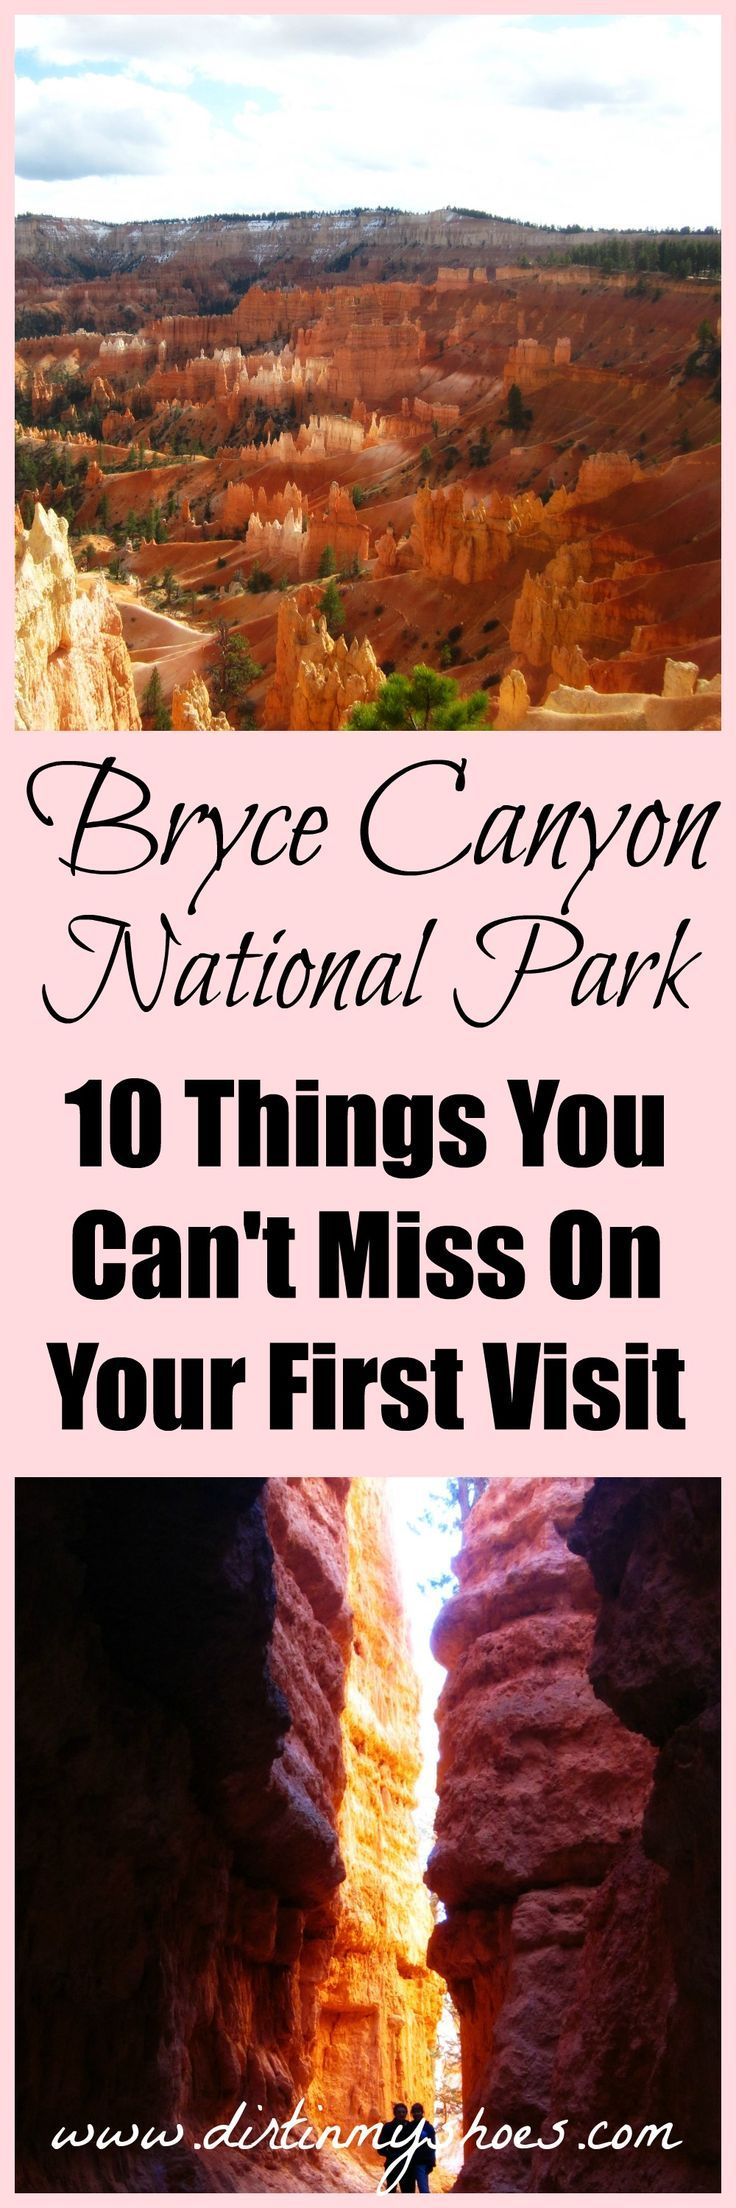 Bryce Canyon National Park || Explore the hoodoos of Bryce Canyon with this awesome list of 10 things you can't miss!